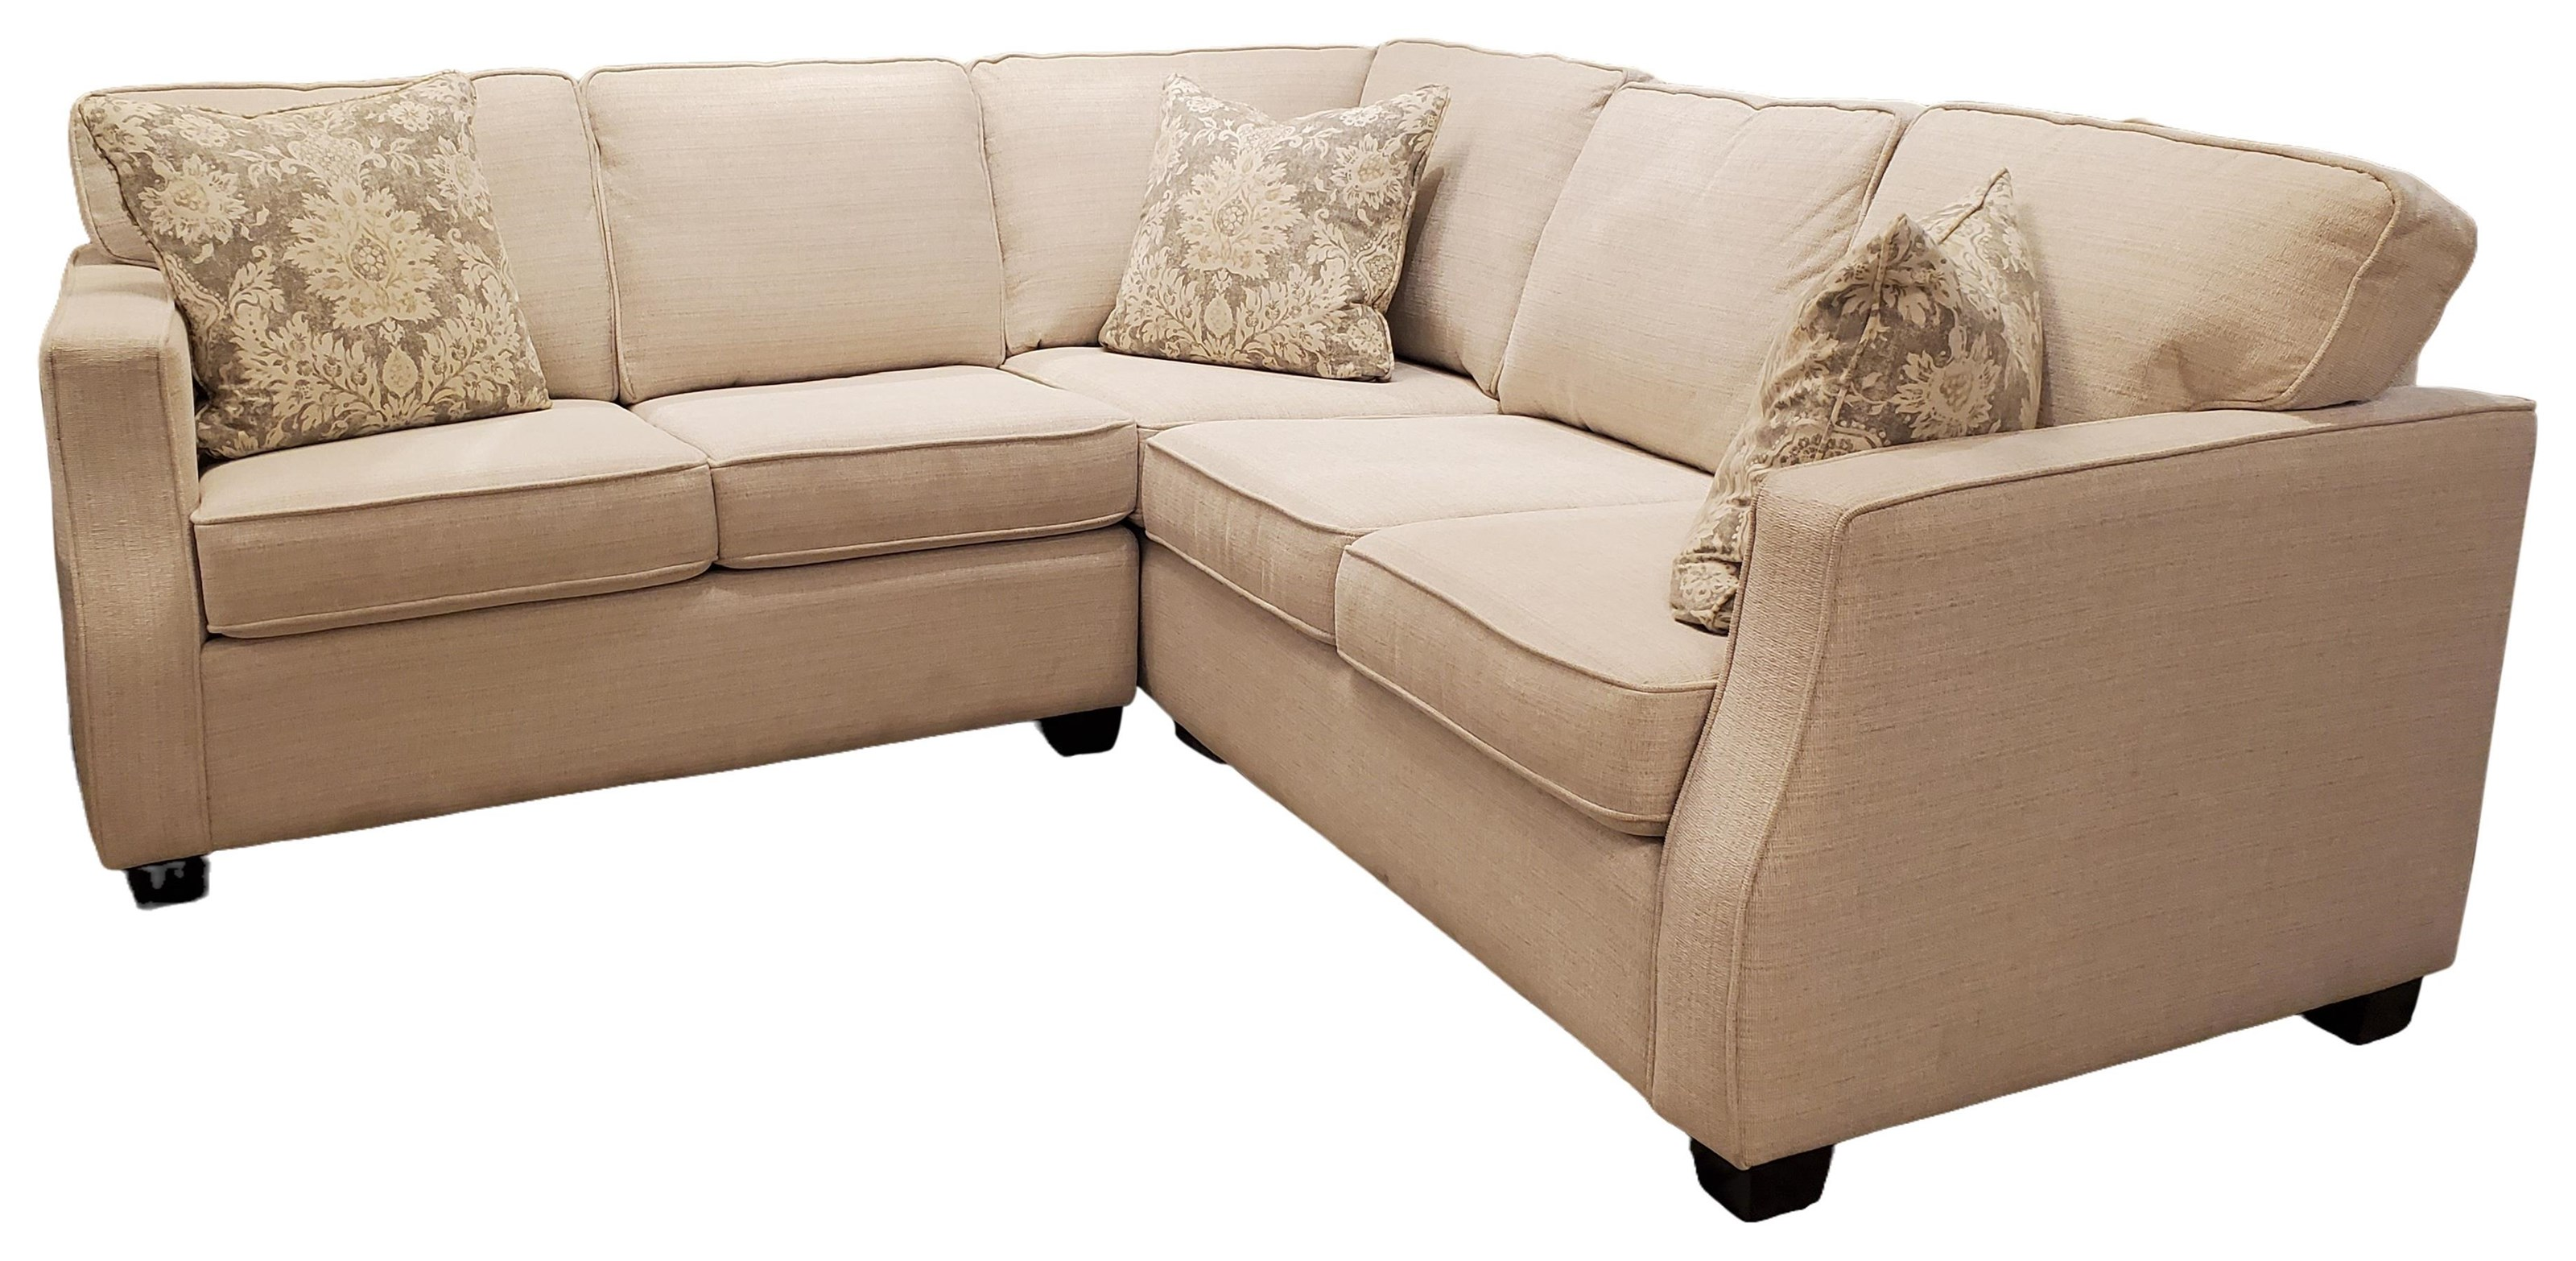 2570 Sectional Sofa by Decor-Rest at Upper Room Home Furnishings